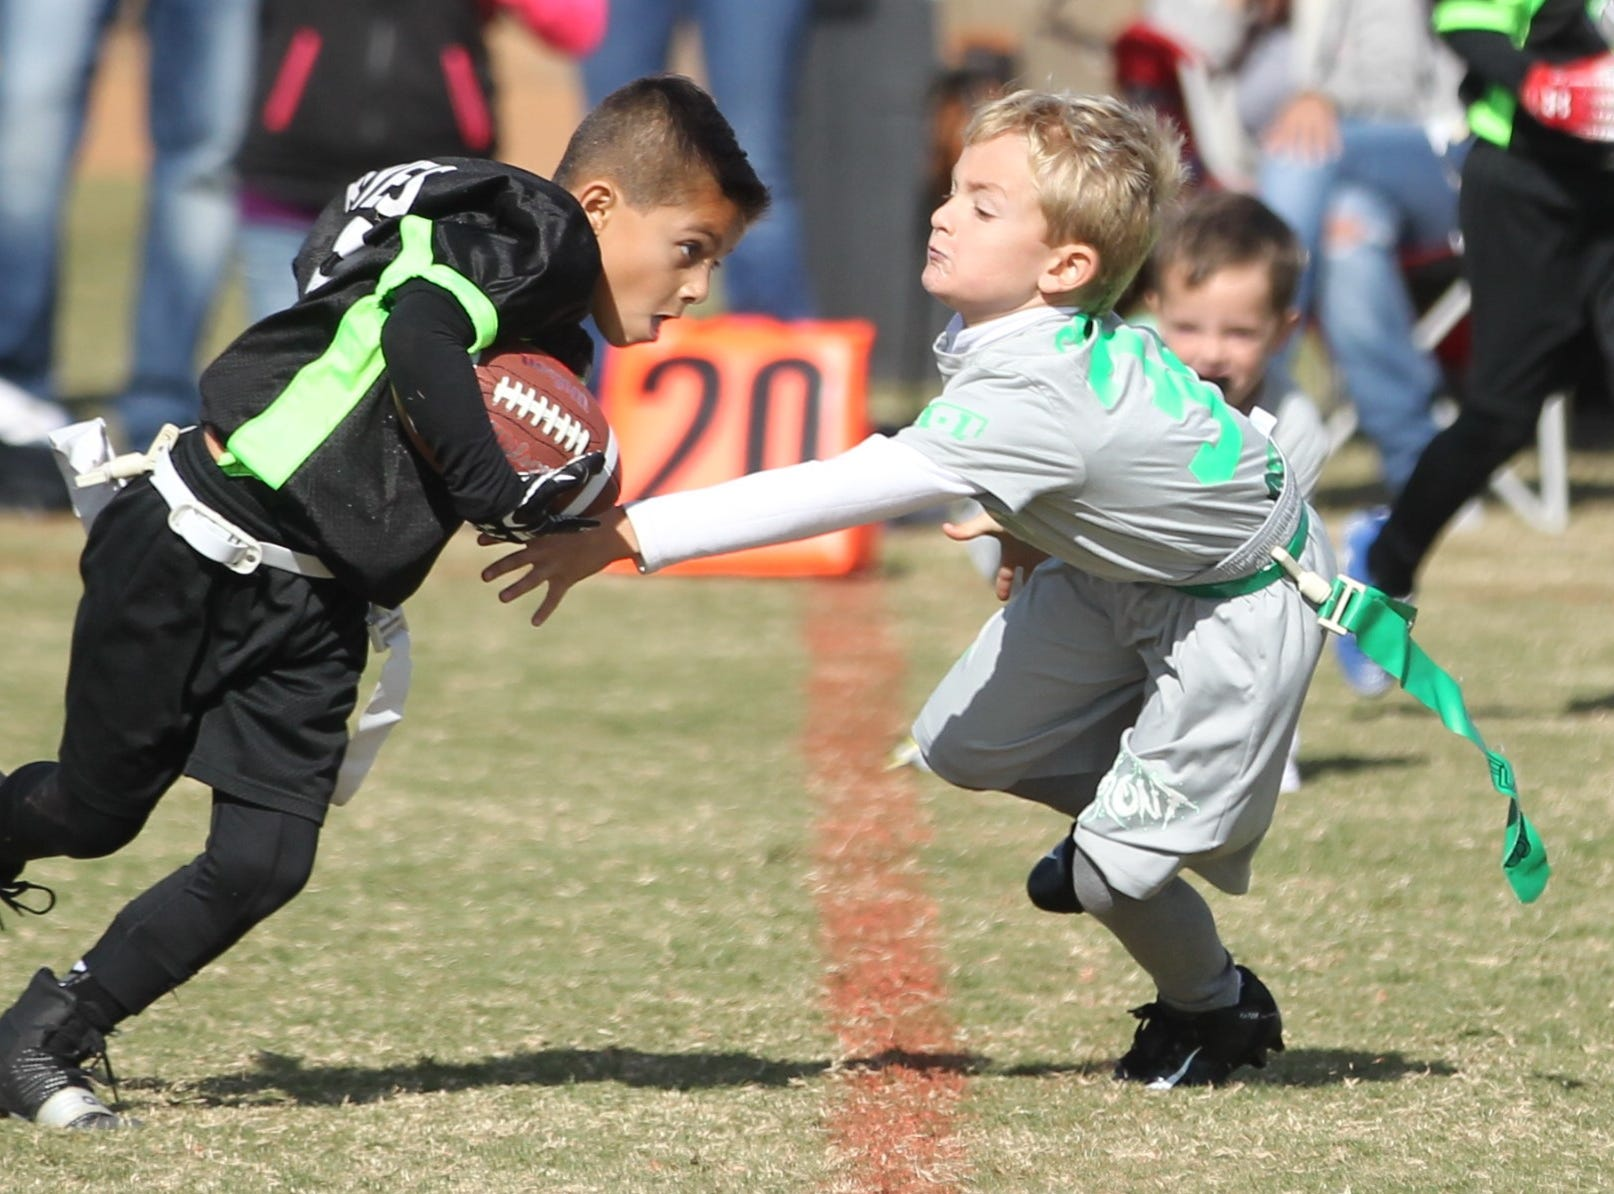 San Angelo Seahawks' Aiden Reyes runs the ball as The Front's Corbyn Odell defends on the play during the championship game of the 6u TAAF State Youth Flag Football Tournament at the Texas Bank Sports Complex on Sunday, Nov. 11, 2018. The Front, which is from Wall, won a defensive battle 13-0.